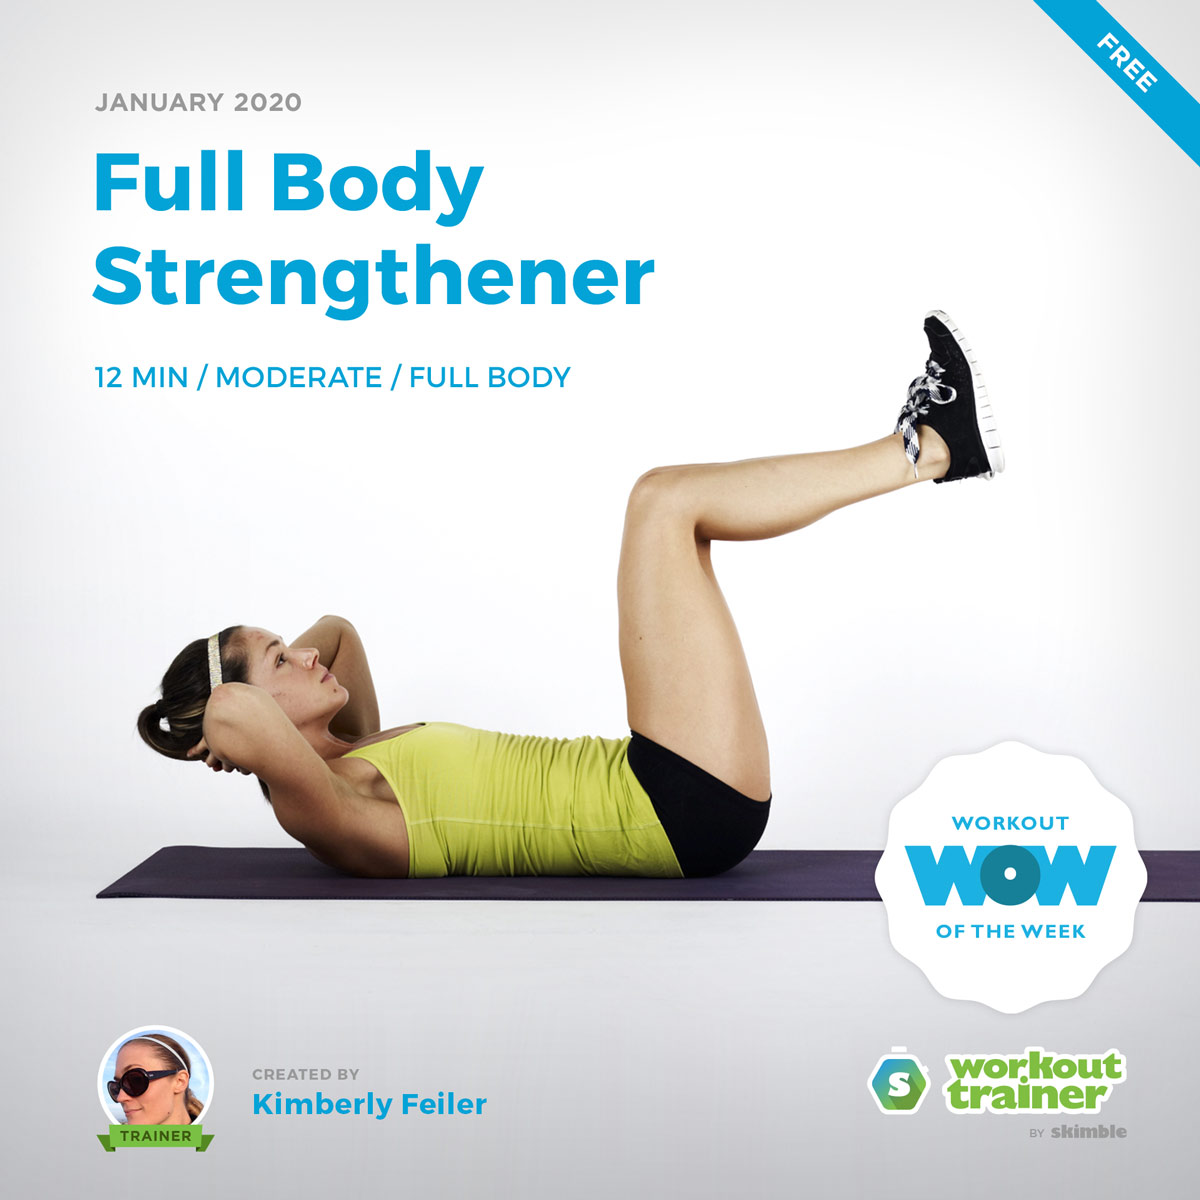 Workout Trainer by Skimble: Free Workout of the Week: Full Body Strengthener by Kimberly Feiler